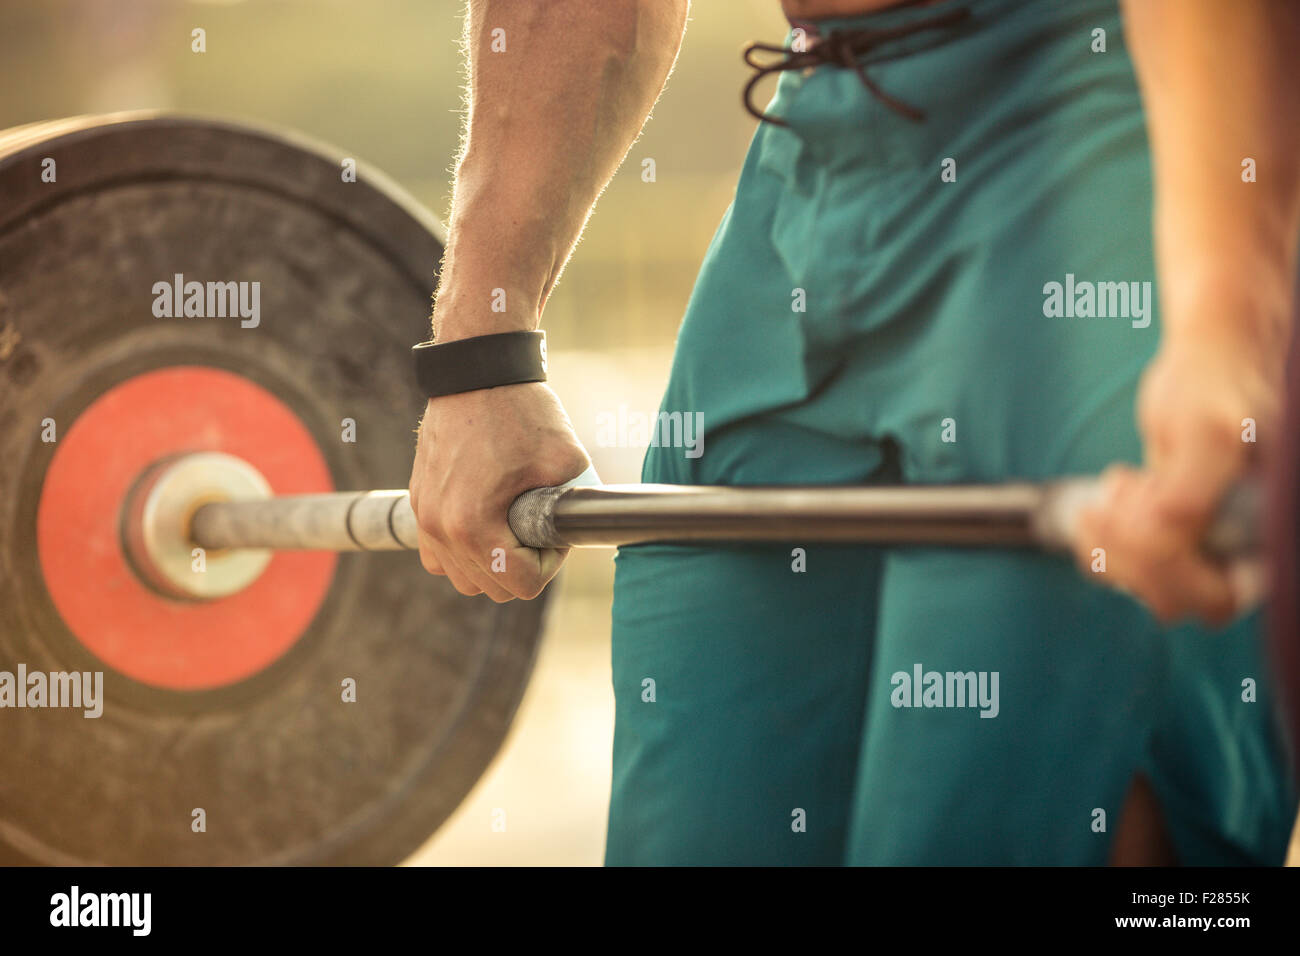 Closeup portrait of a man workout with barbell - Stock Image